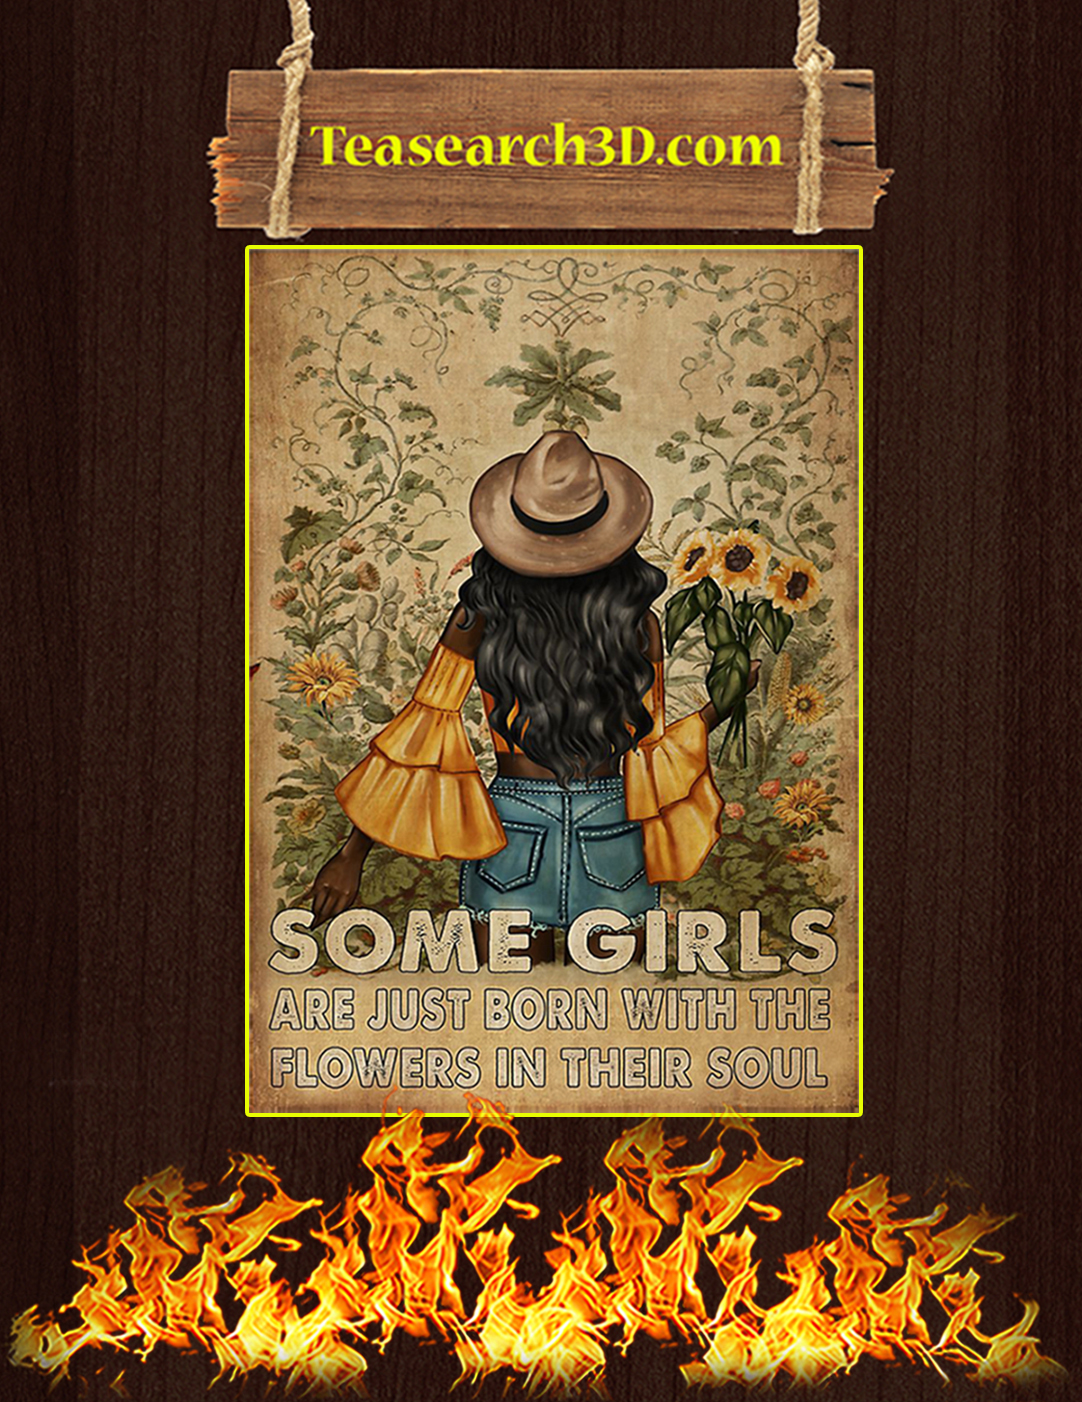 Some girls are just born with the flowers in their soul poster A2